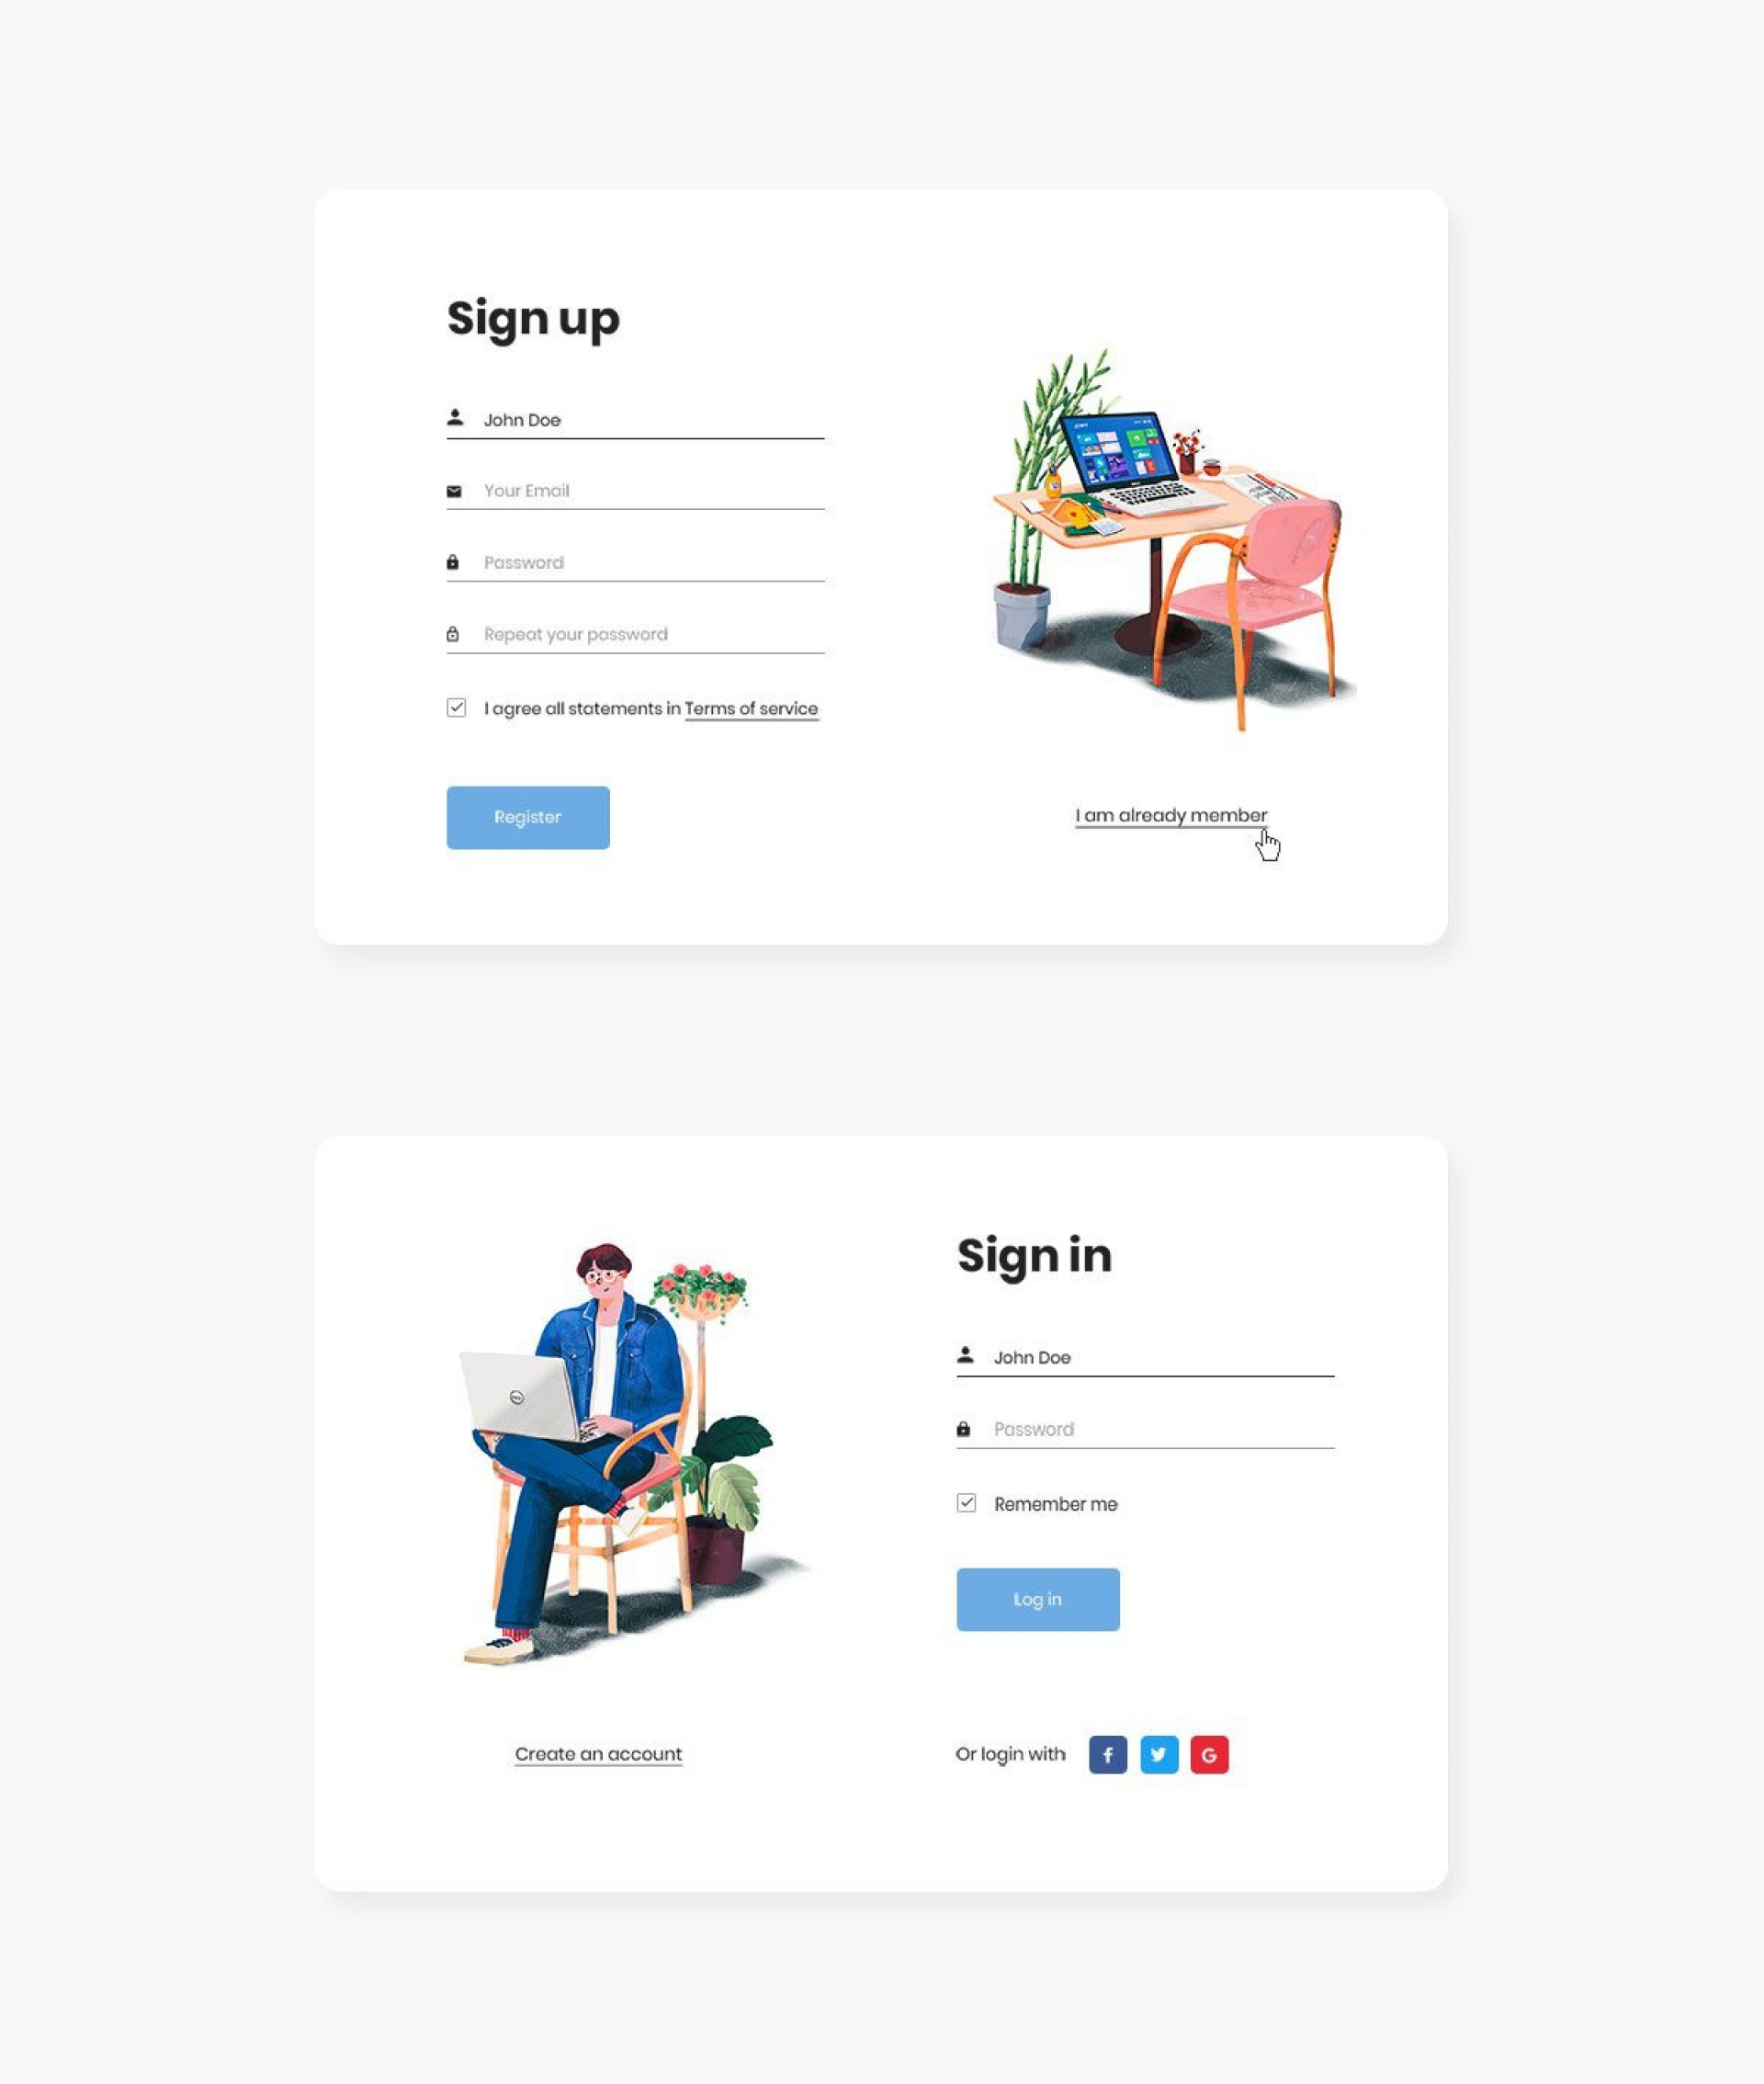 003 Simple Free Registration Form Template High Definition  Templates Responsive Bootstrap Download In Html Employee Cs1920